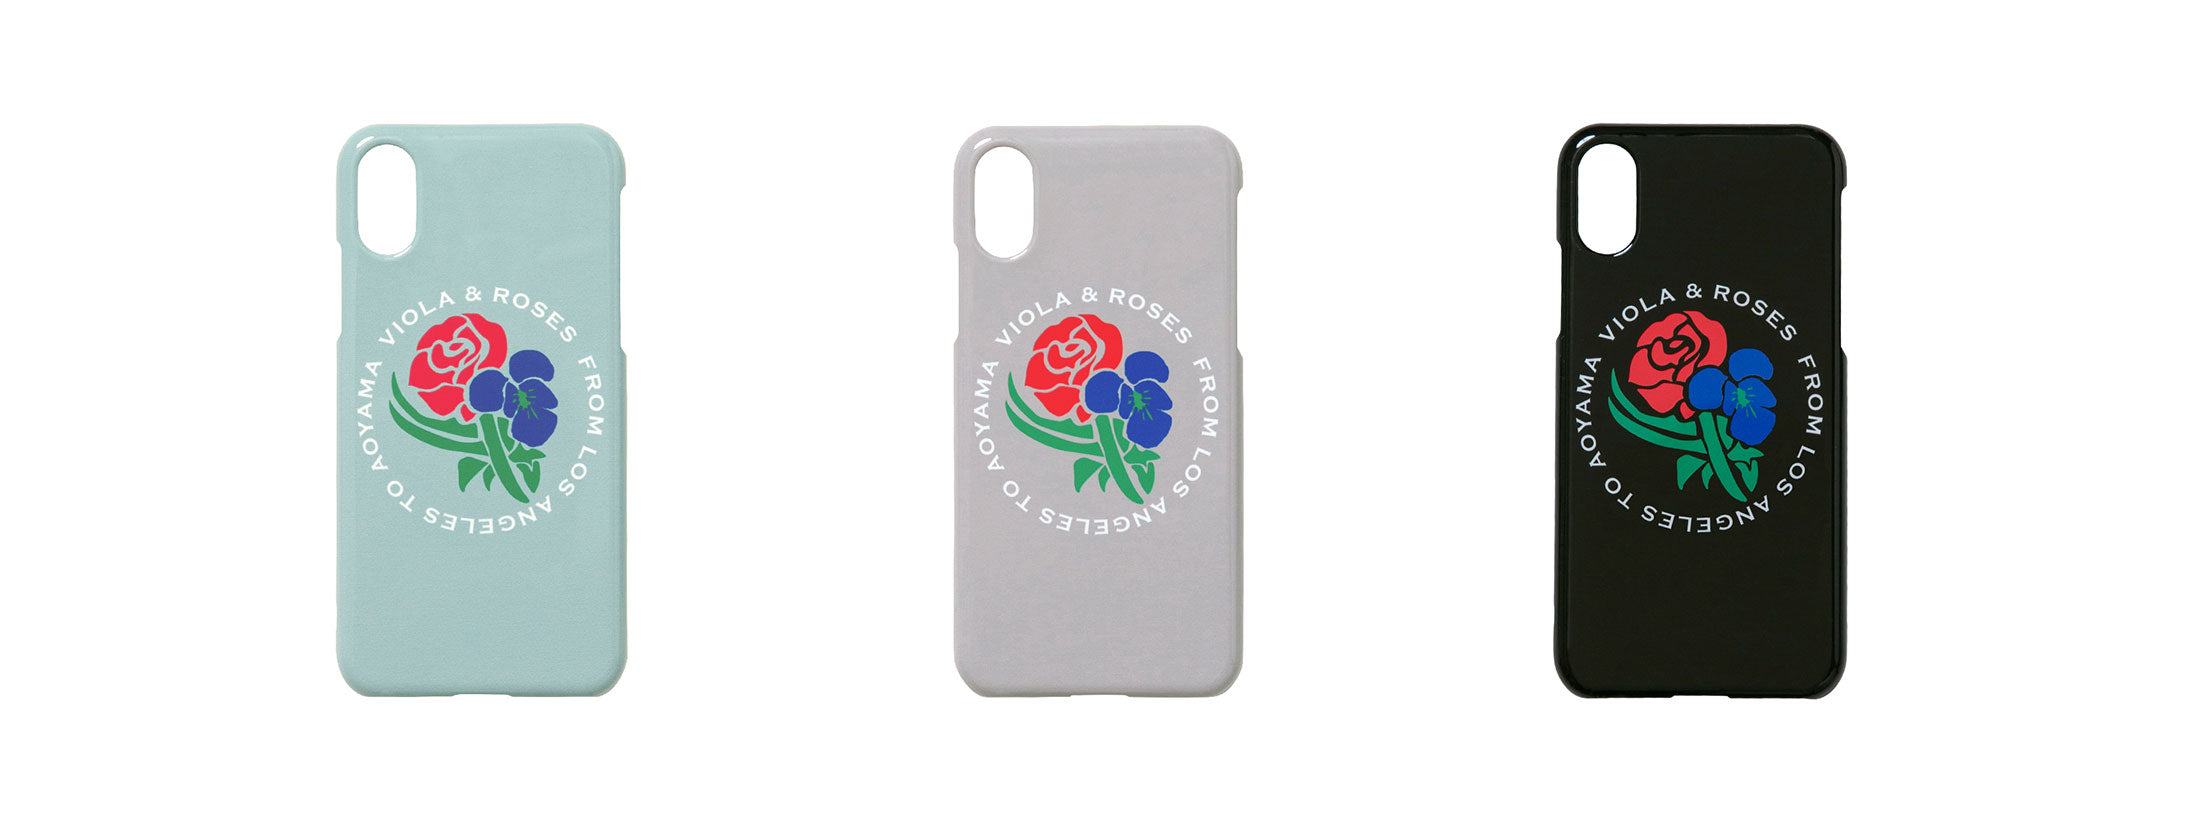 https://www.mrgentleman.jp/products/viola-roses-iphone-case